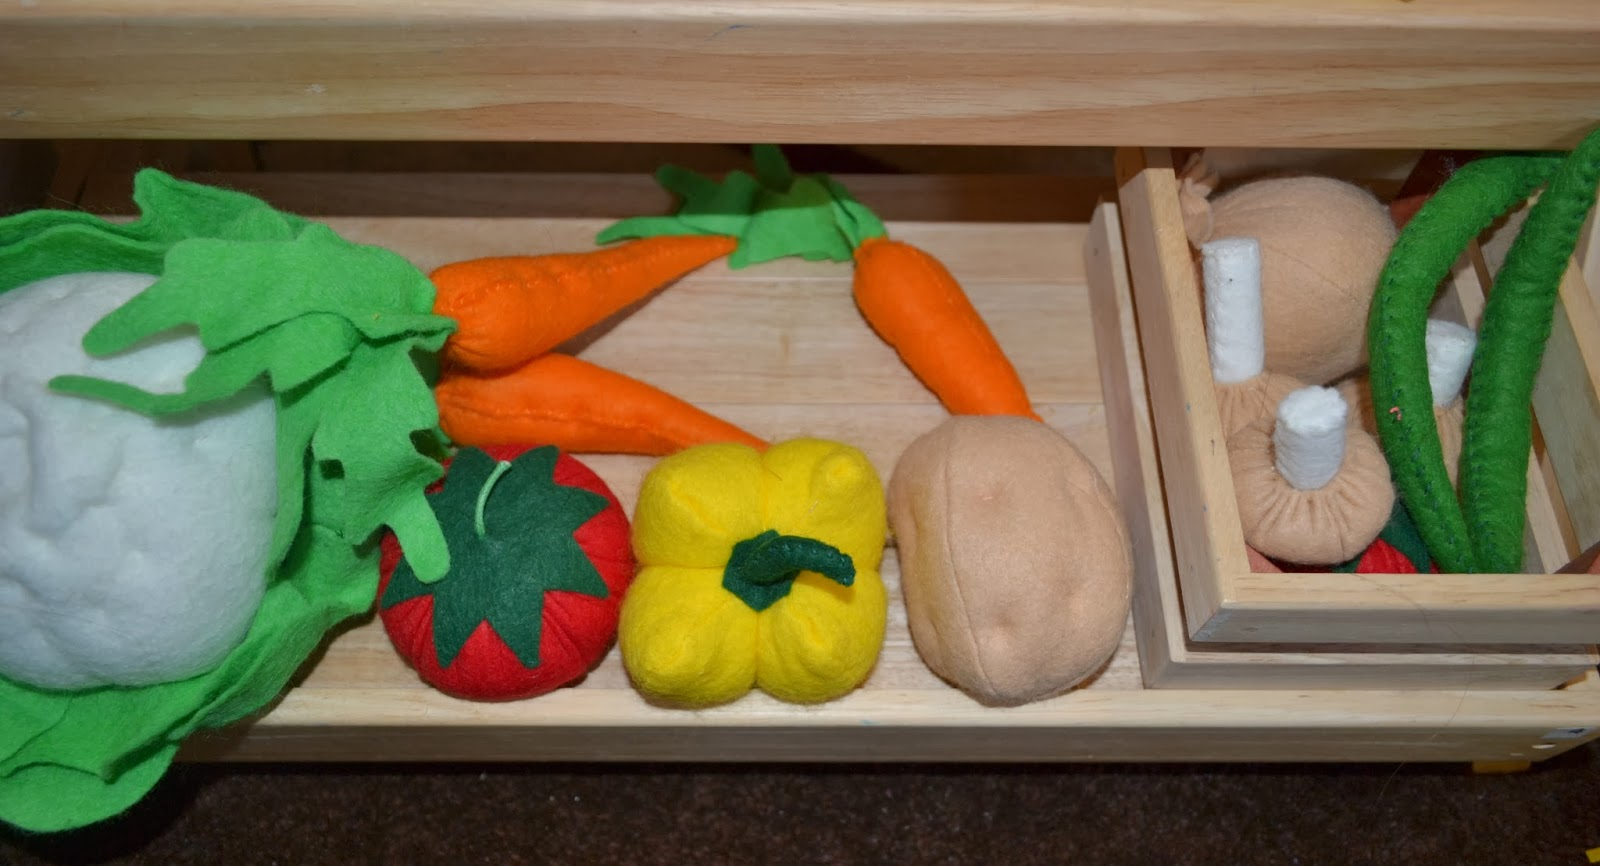 http://www.beebiesbabystore.com/#!product/prd1/1565896195/fabric-fancies-vegetable-play-set